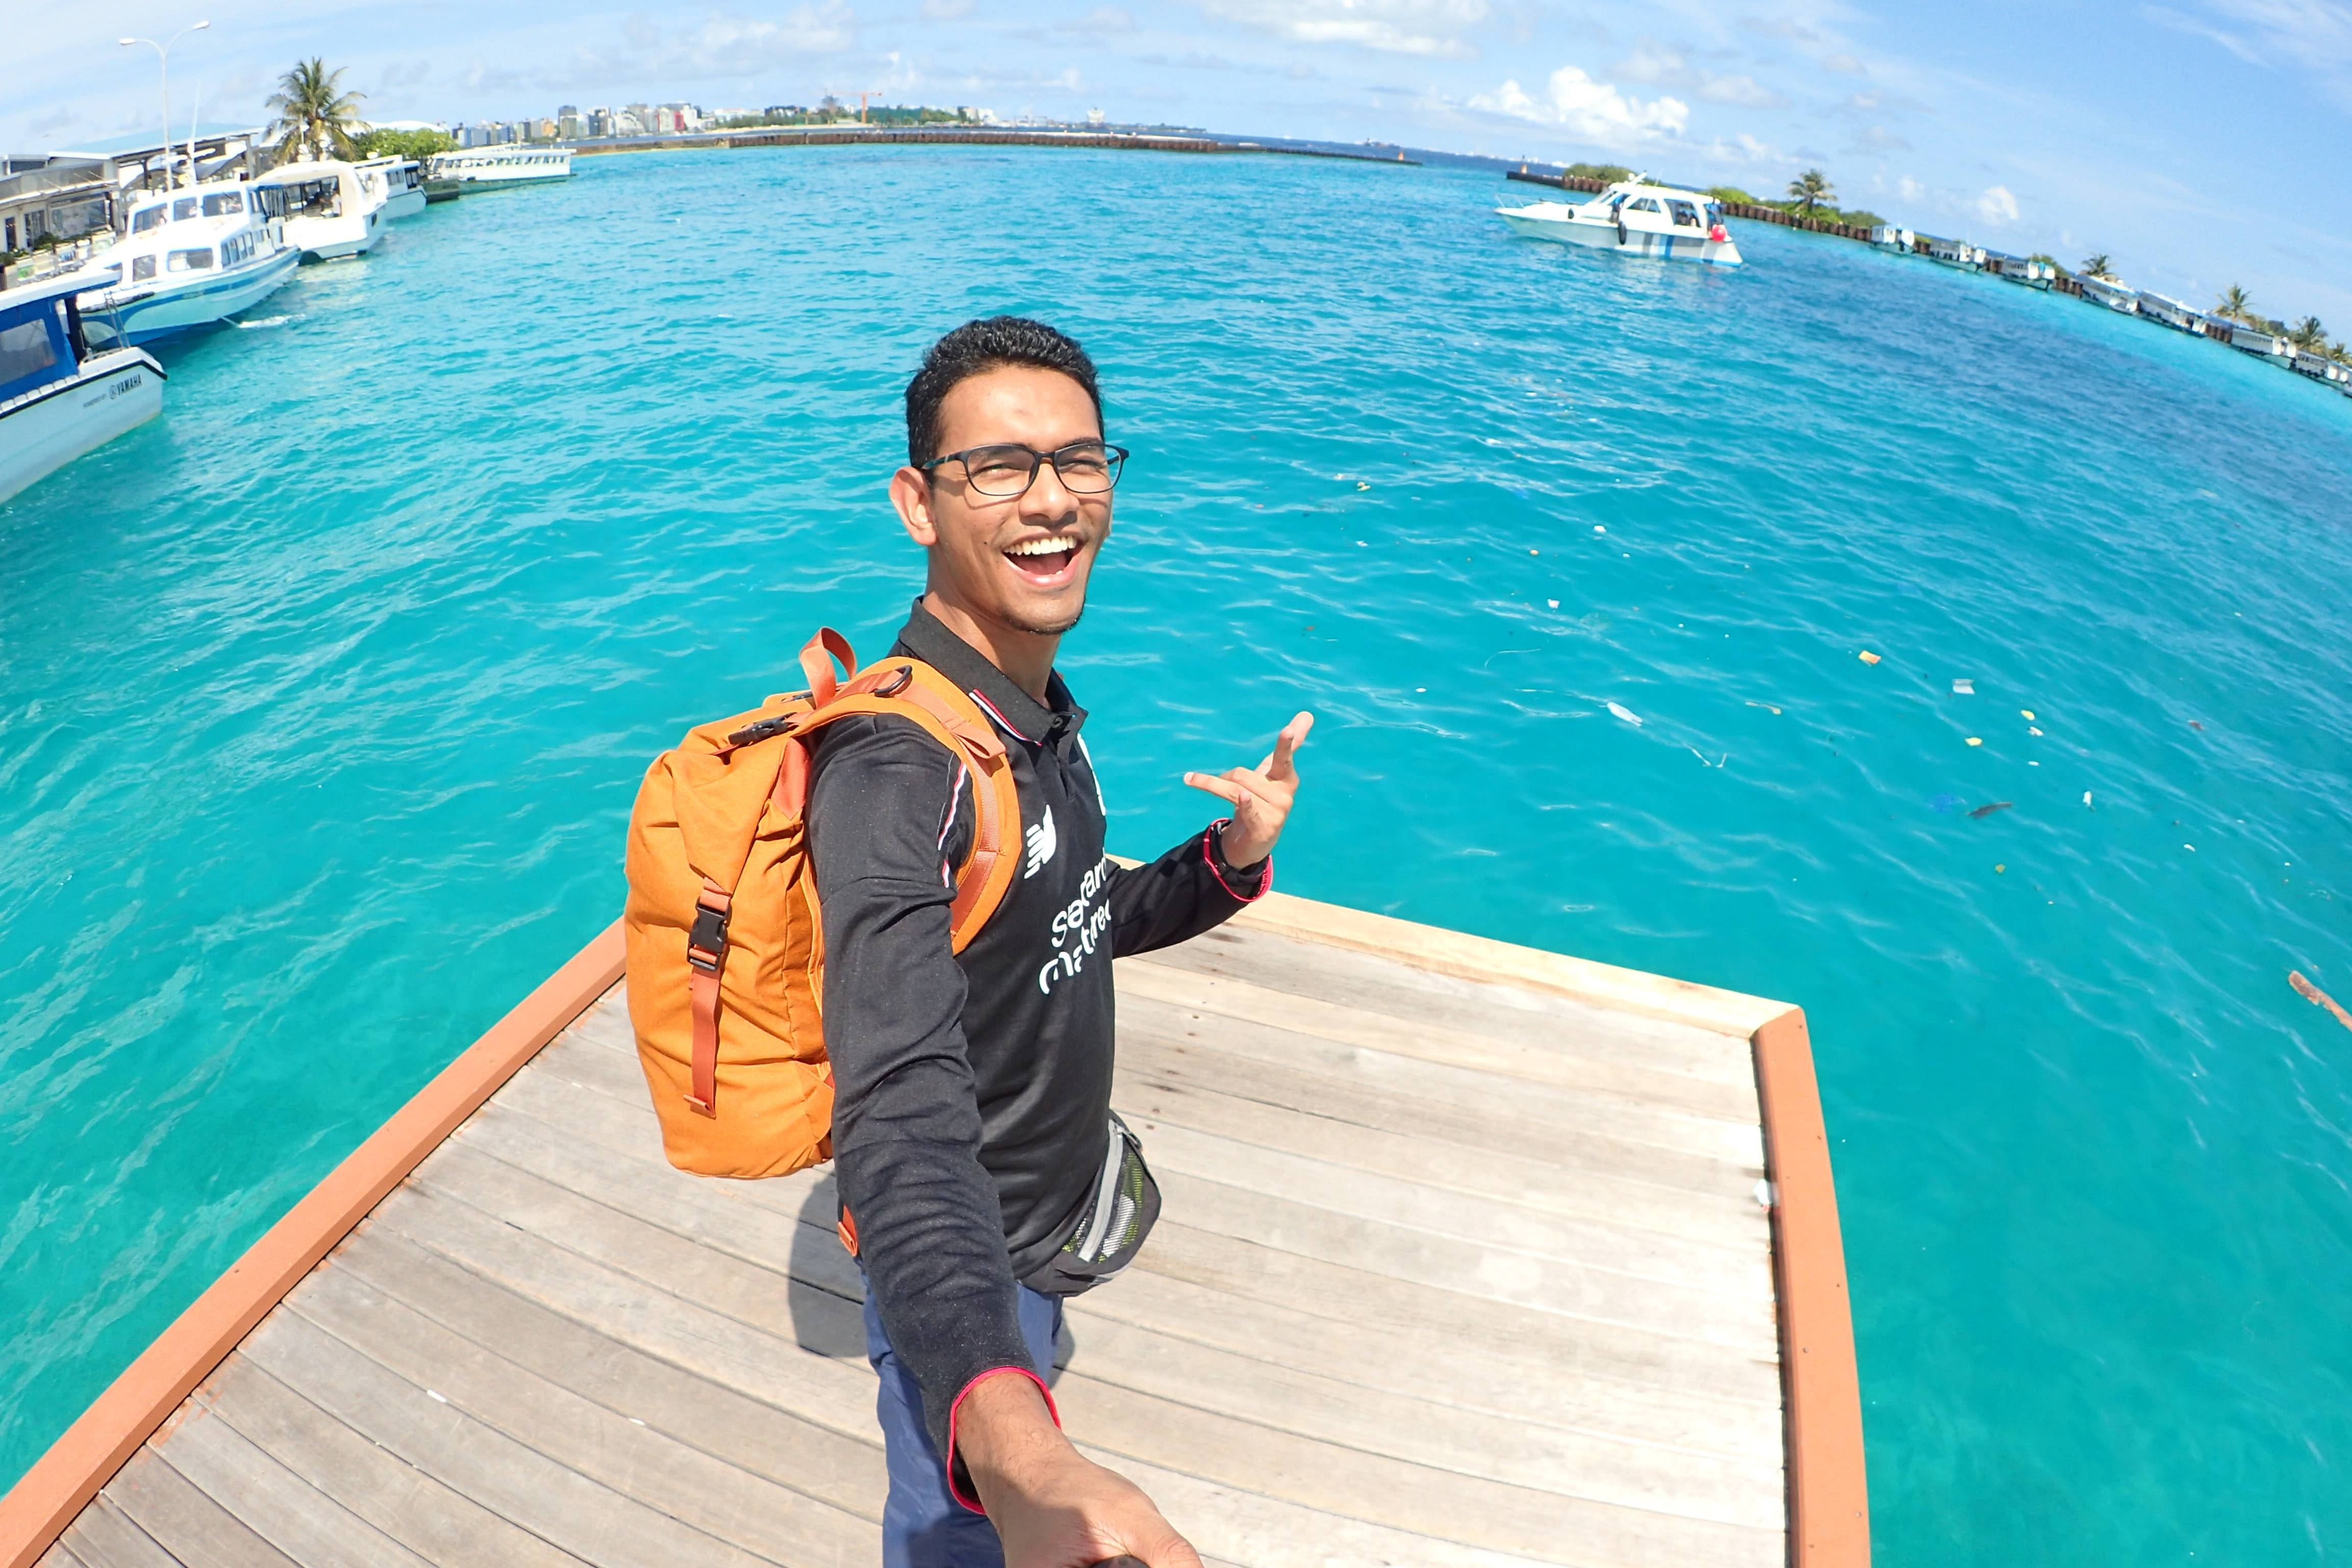 Selfie at the airport jetty.